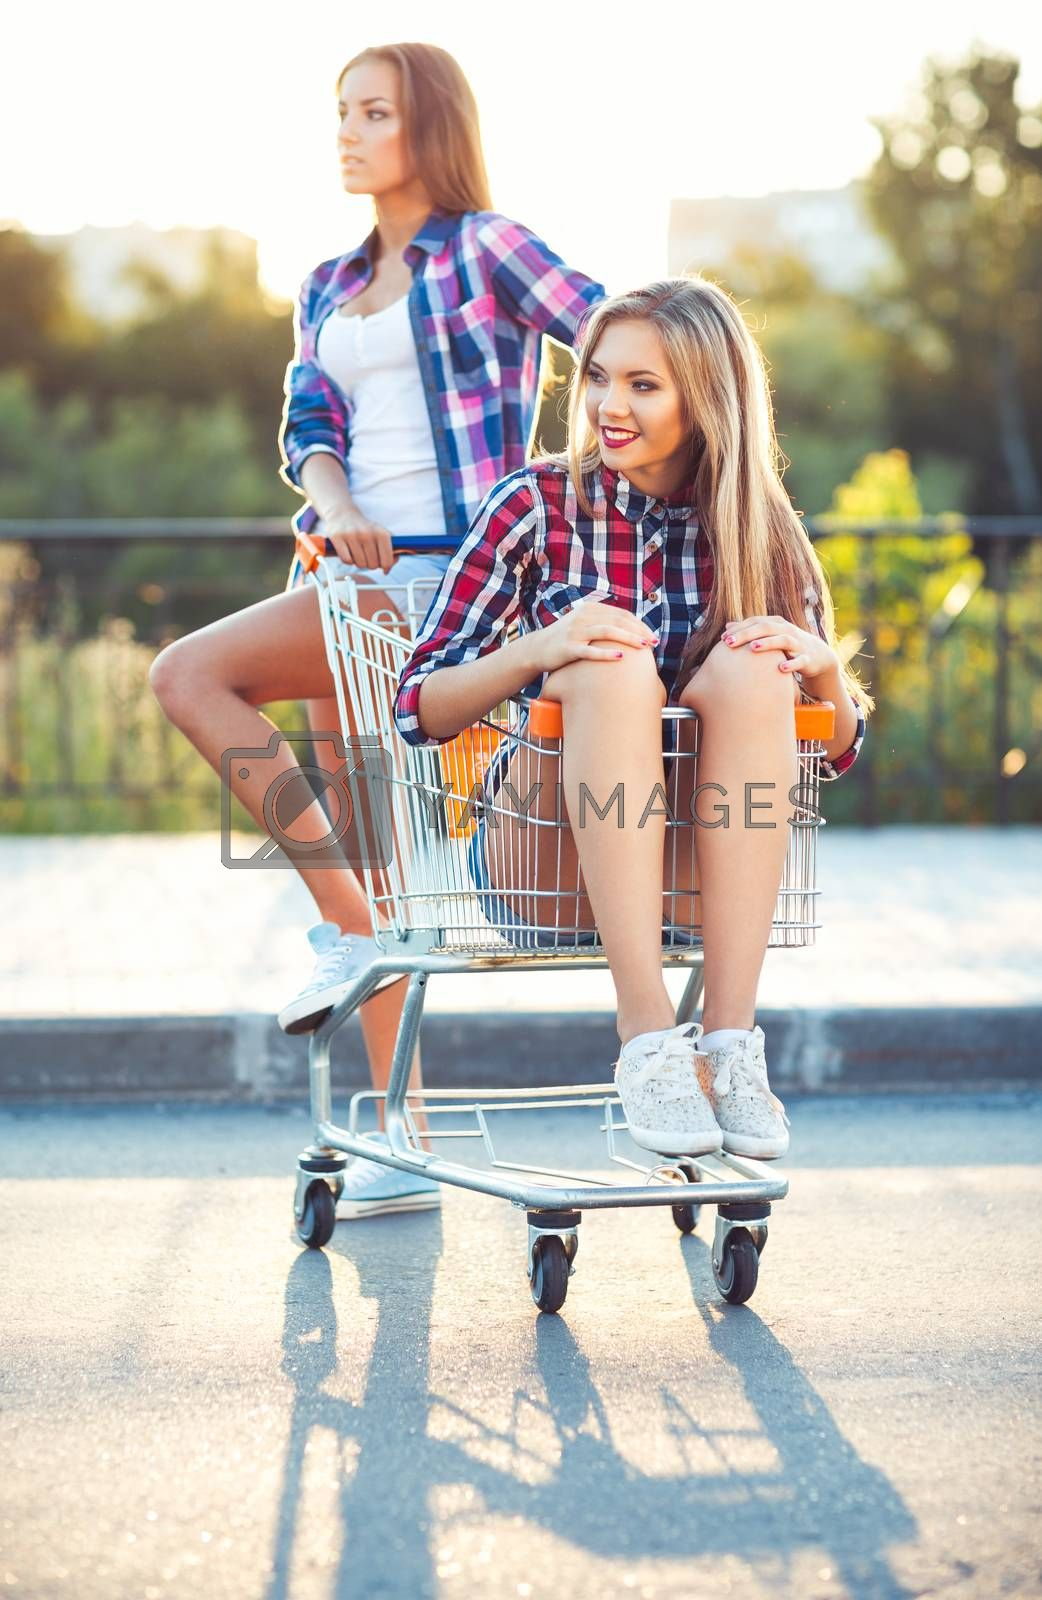 Royalty free image of Two happy beautiful teen girls driving shopping cart outdoors by vlad_star